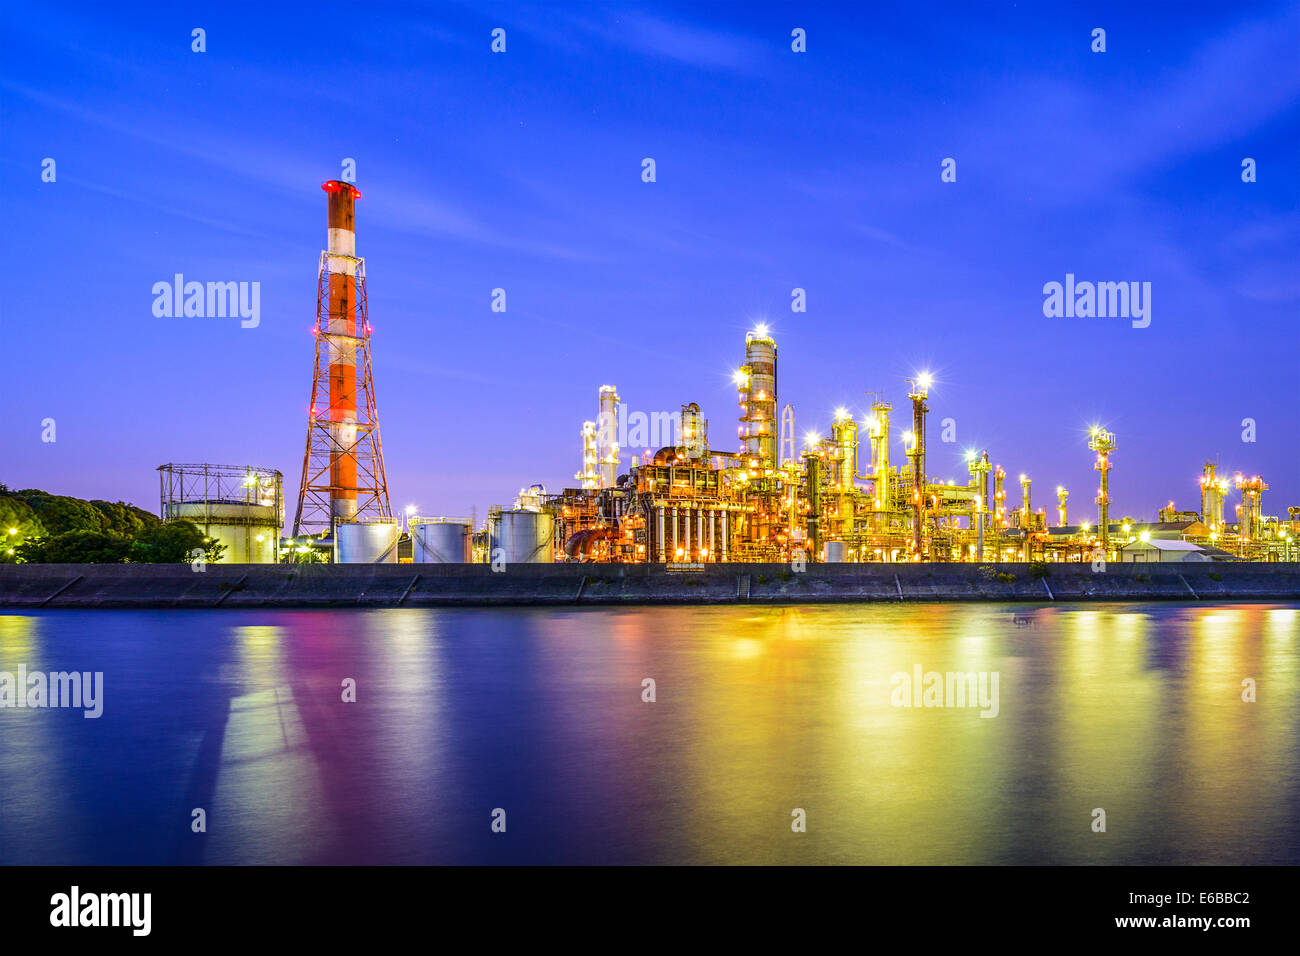 Oil refineries line a river in Yokkaichi, Japan. - Stock Image